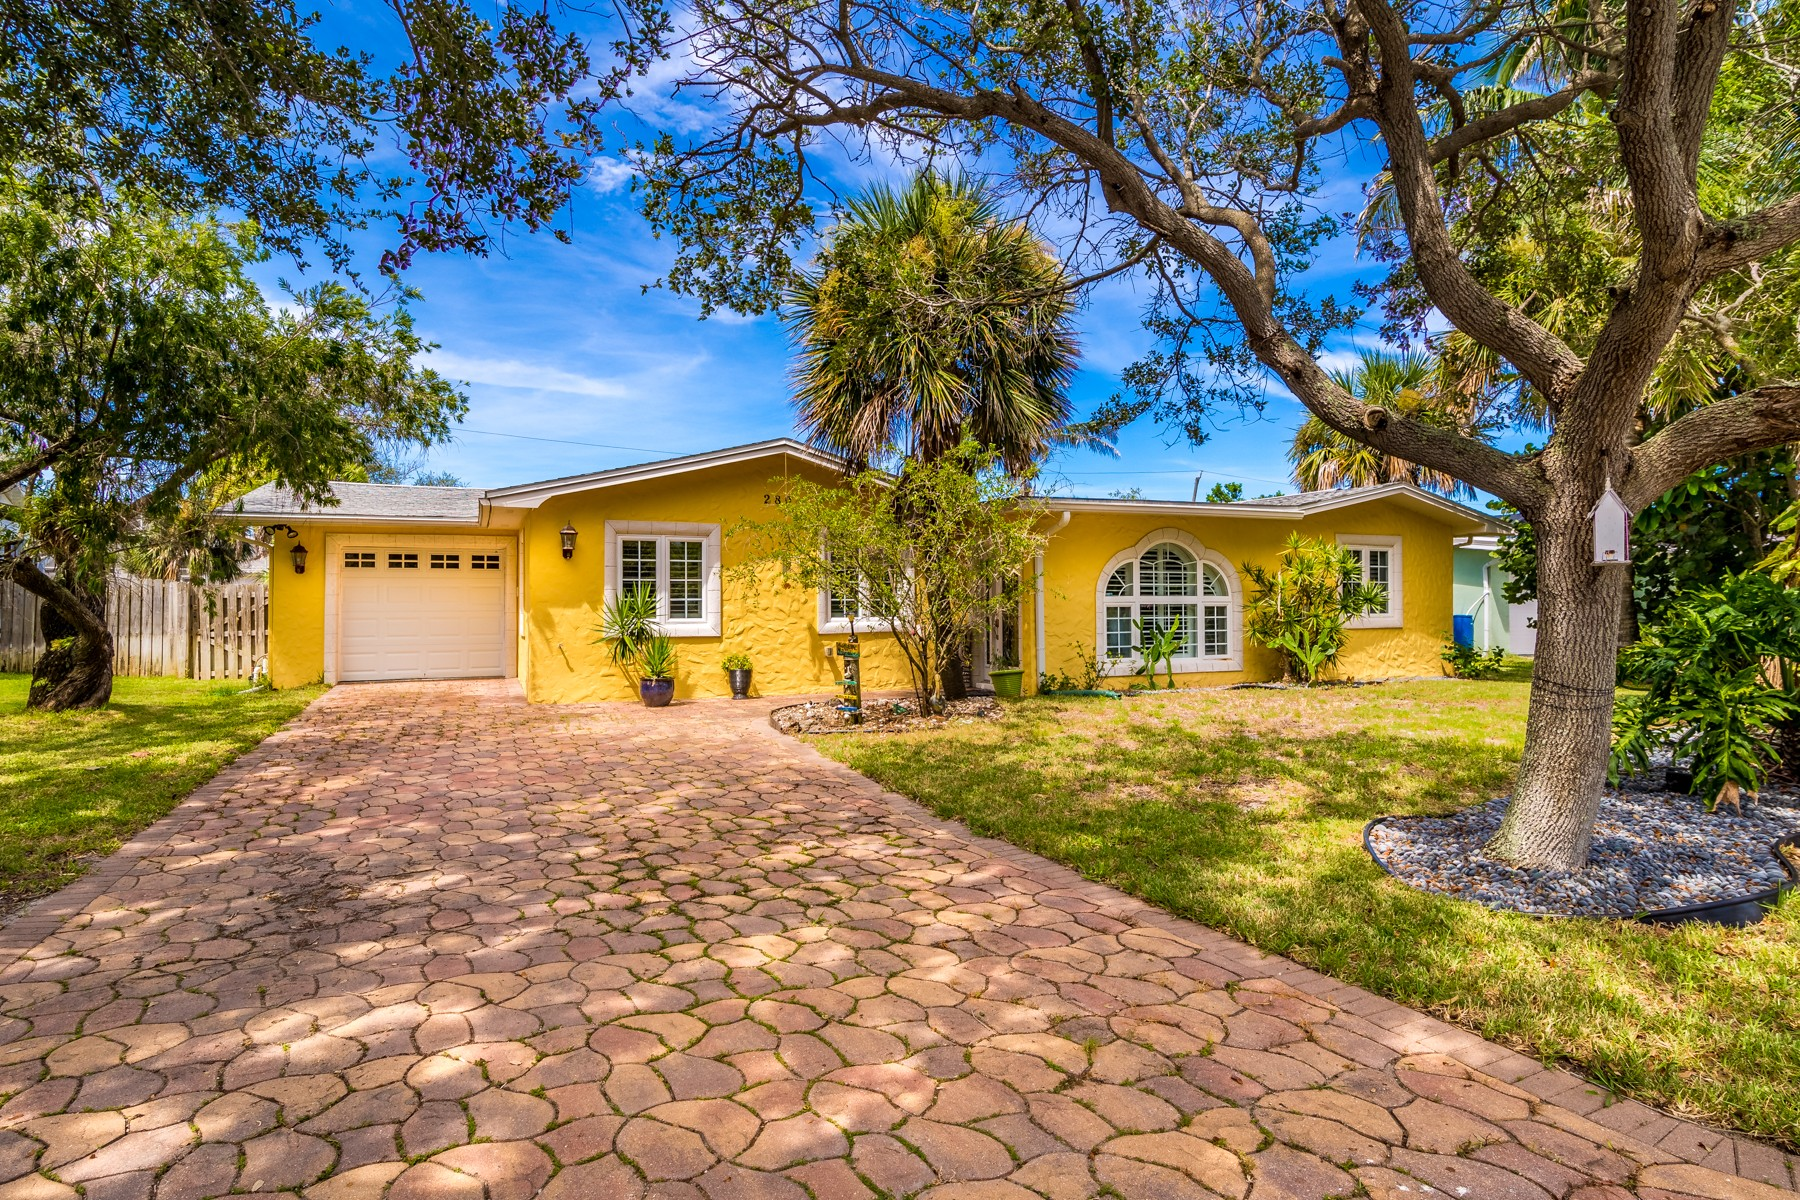 Single Family Home for Sale at Remodeled Home on Quiet Street 280 Richards Road Melbourne Beach, Florida 32951 United States